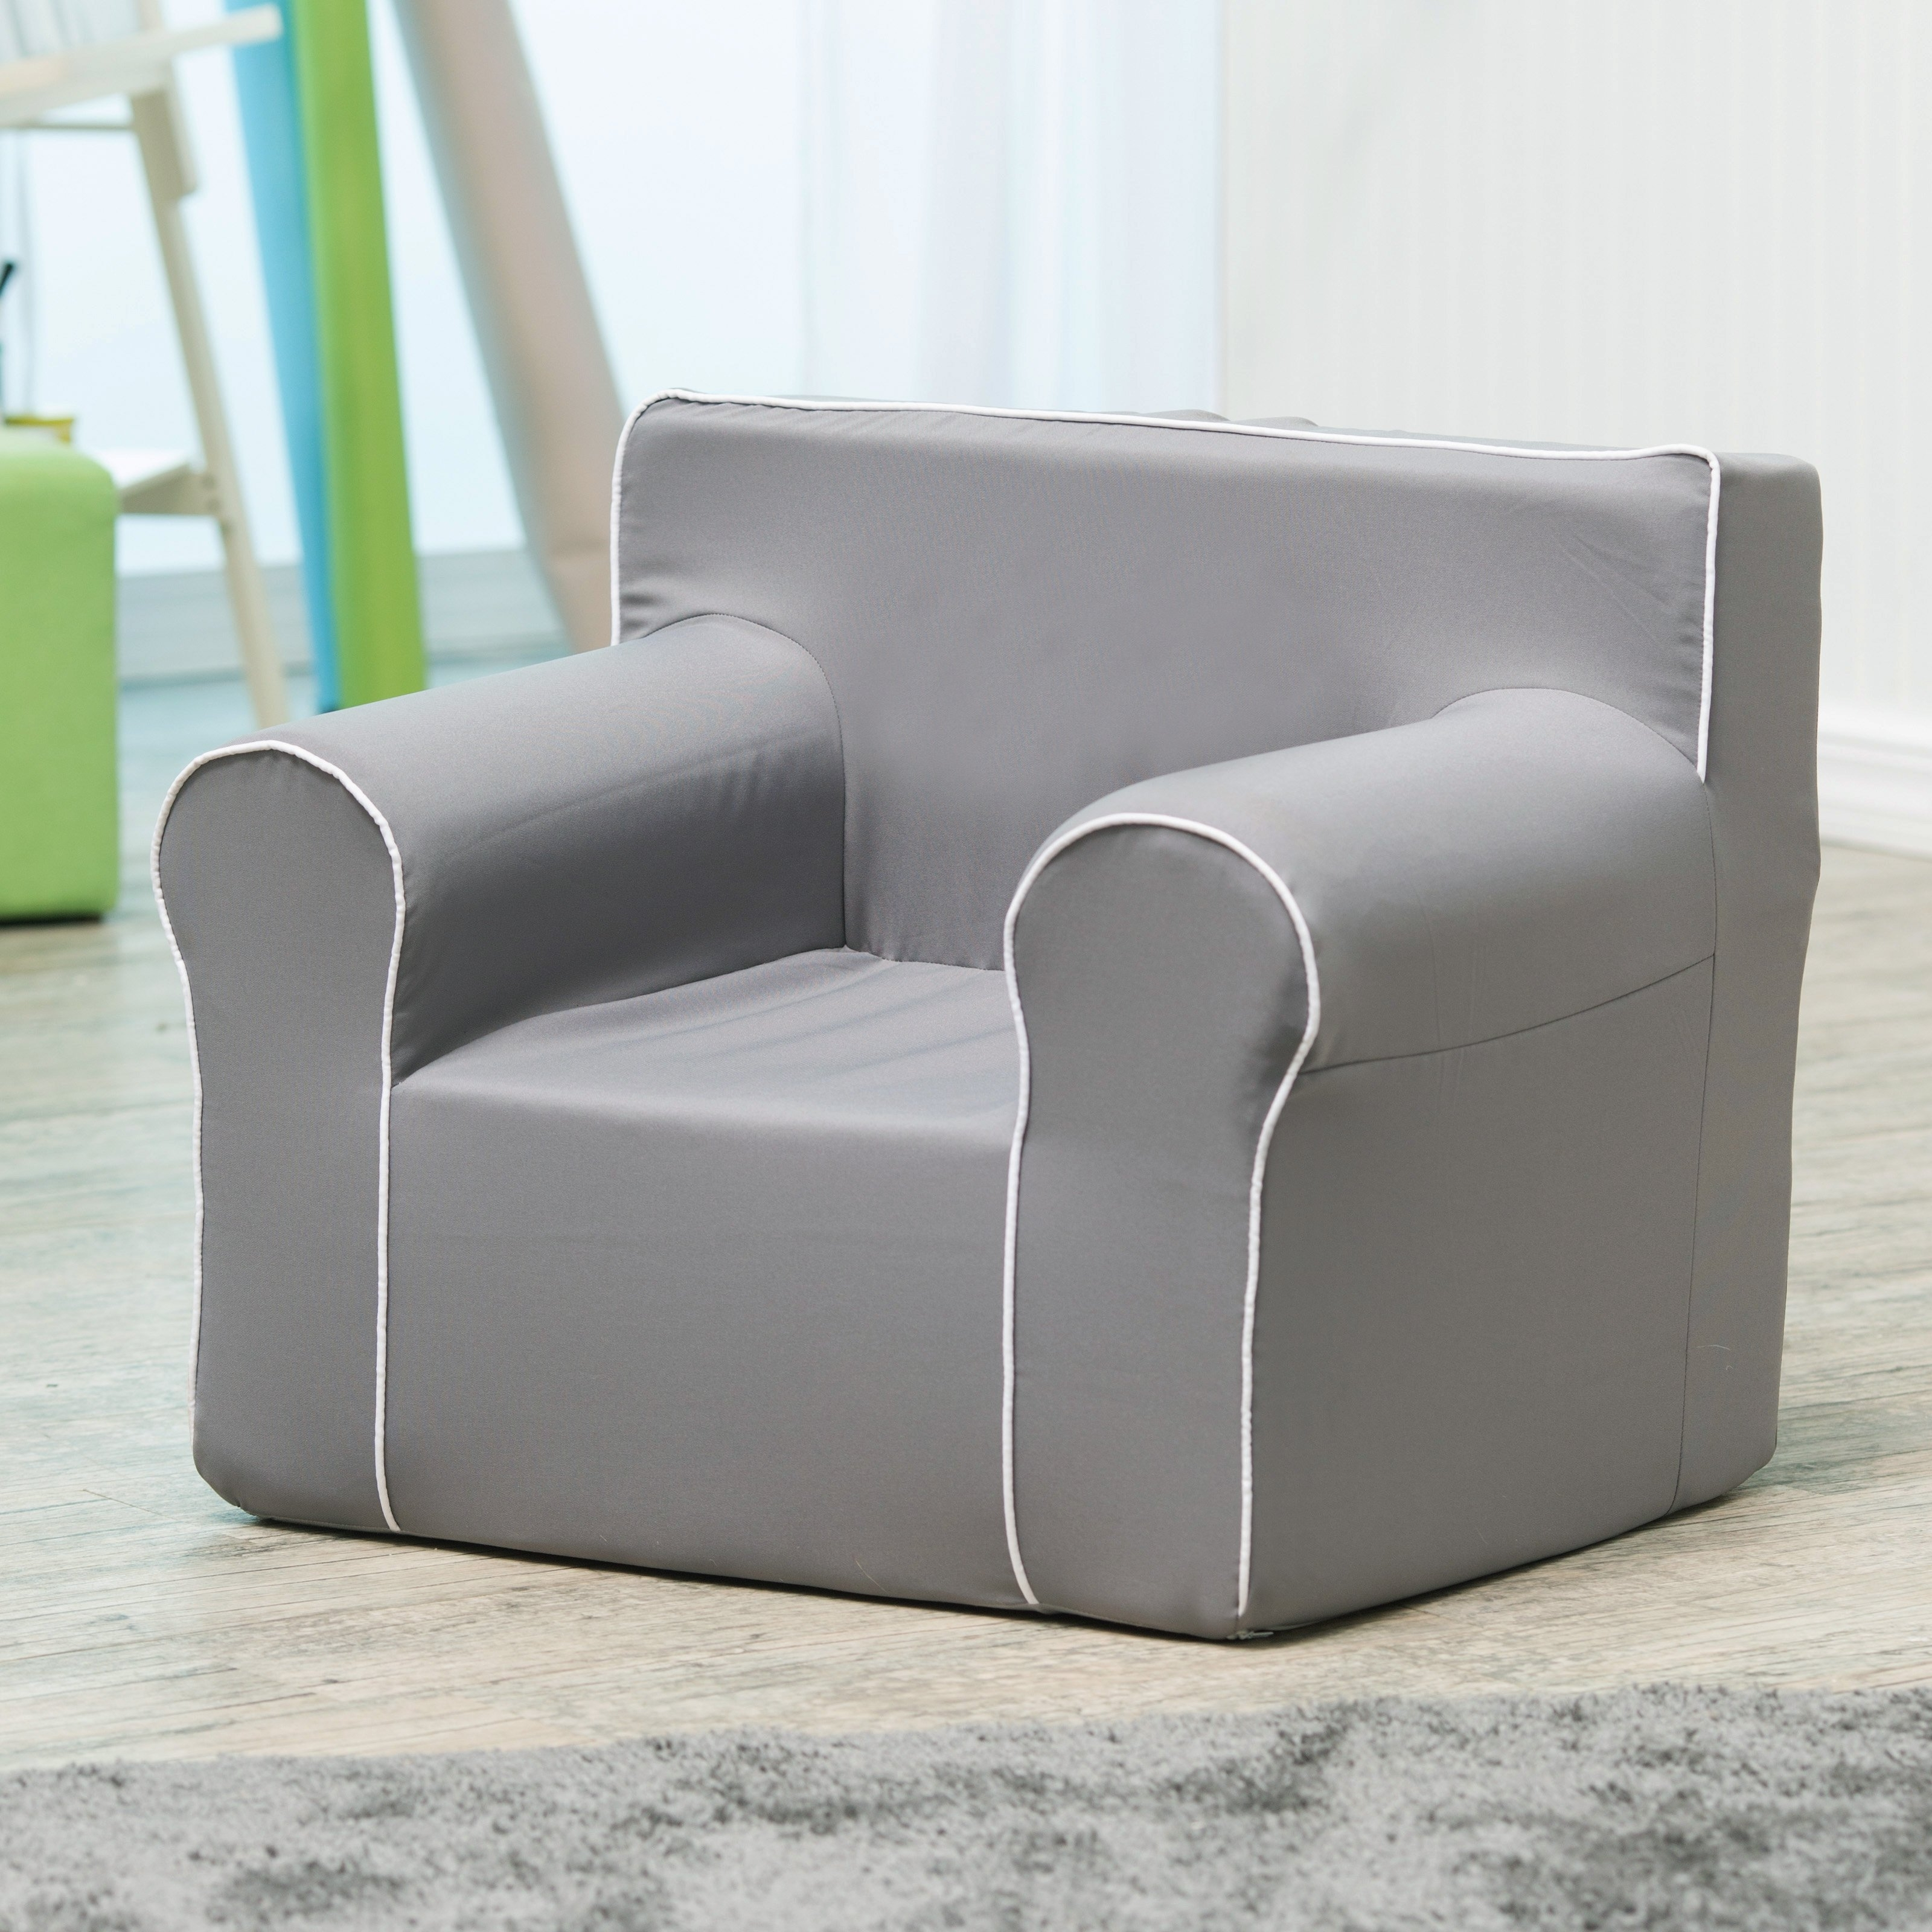 Personalized Kids Chairs And Sofas With Recent Here And There Personalized Kids Chair – Gray Canvas (View 9 of 20)